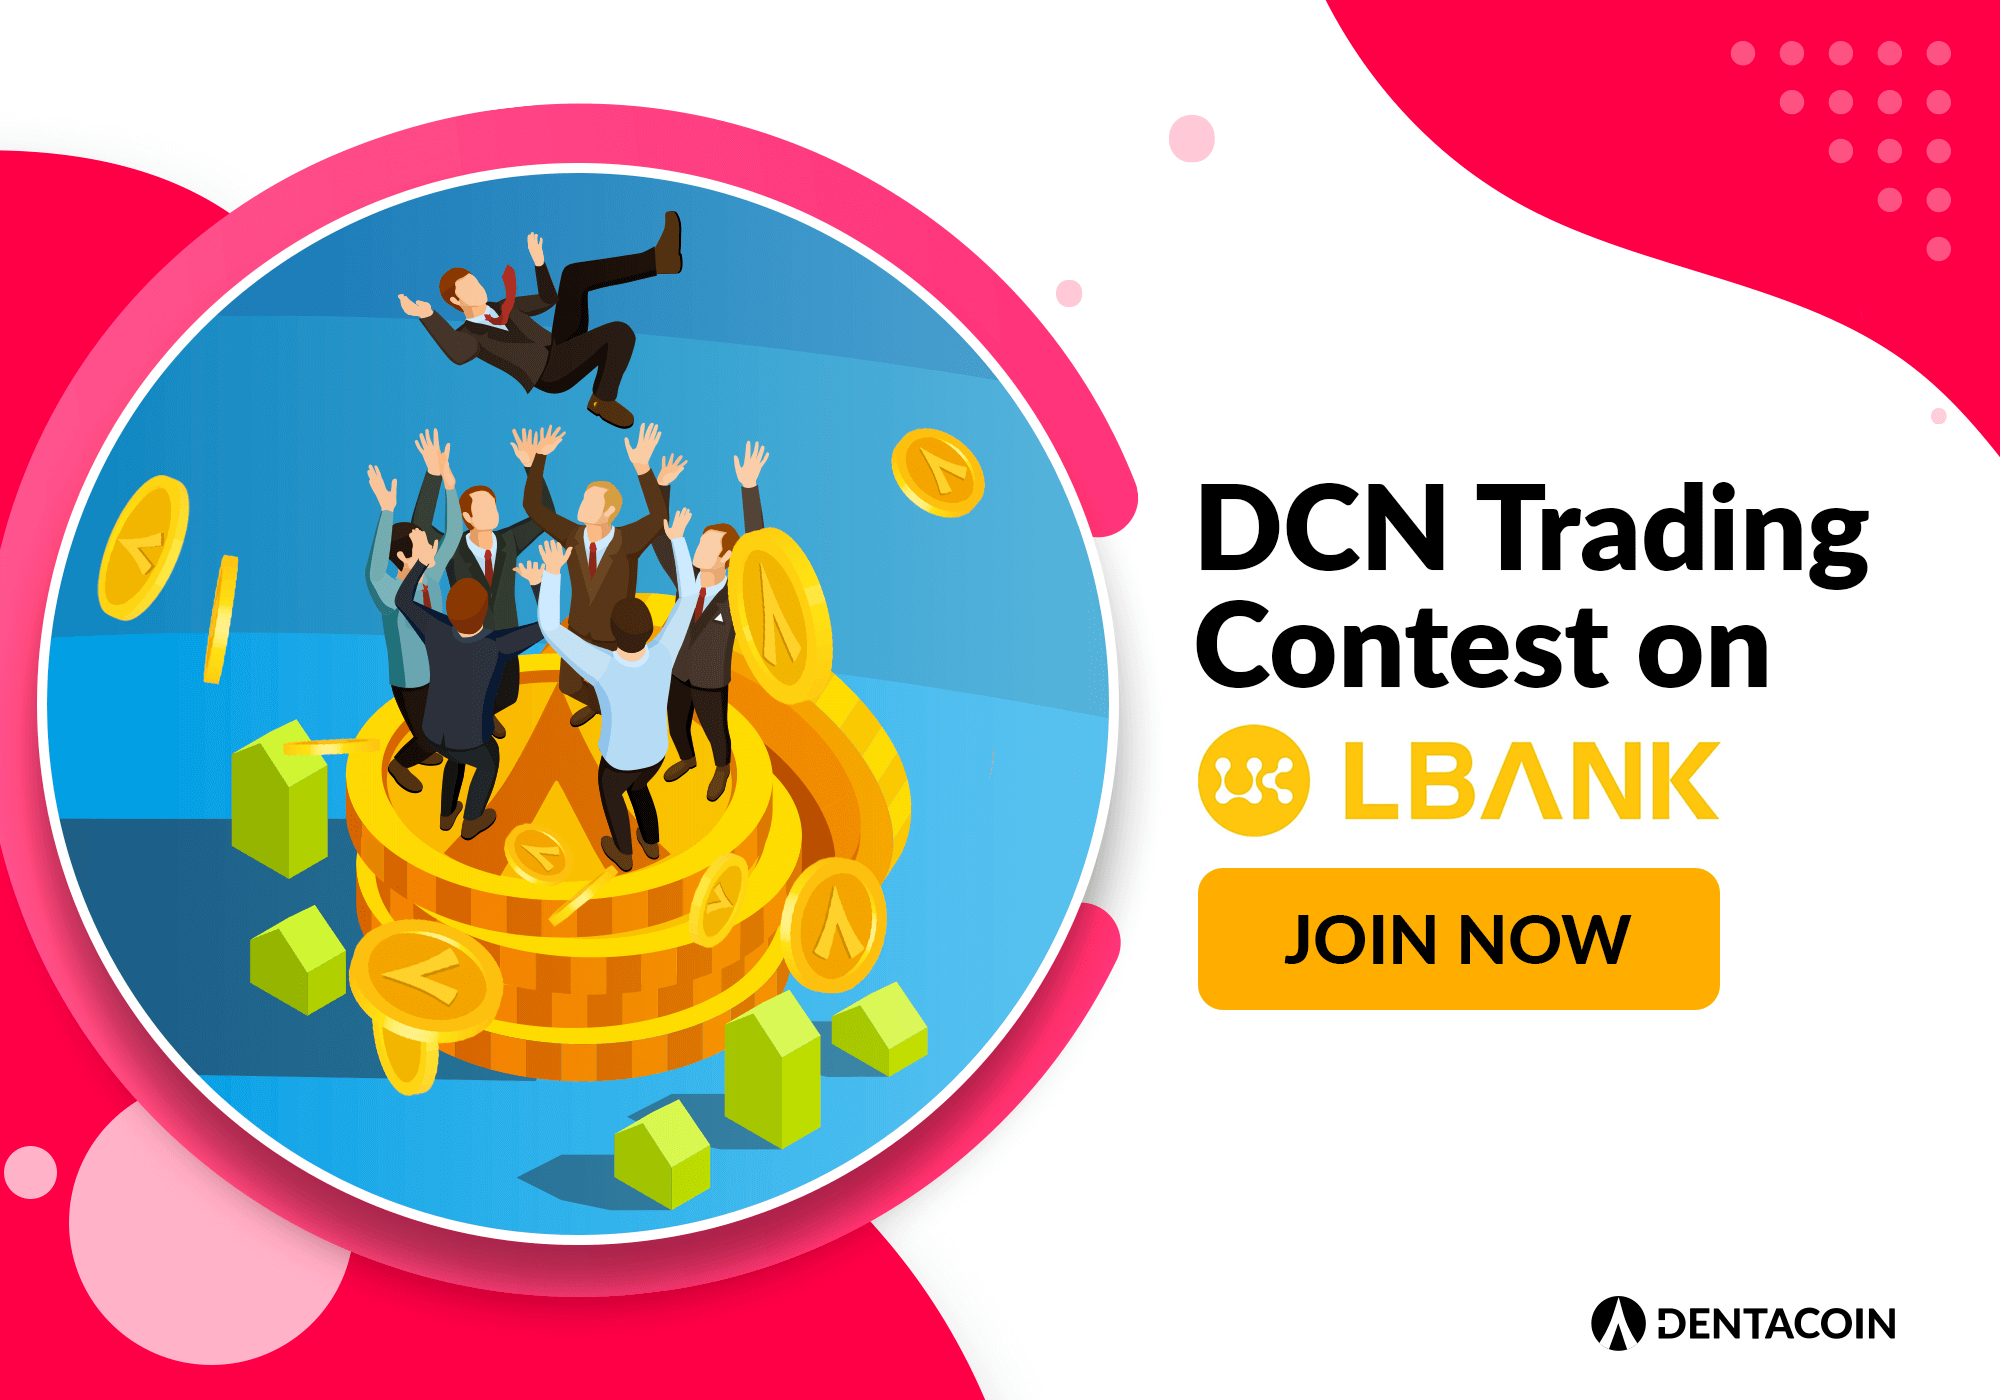 LBank dcn trading contest soc